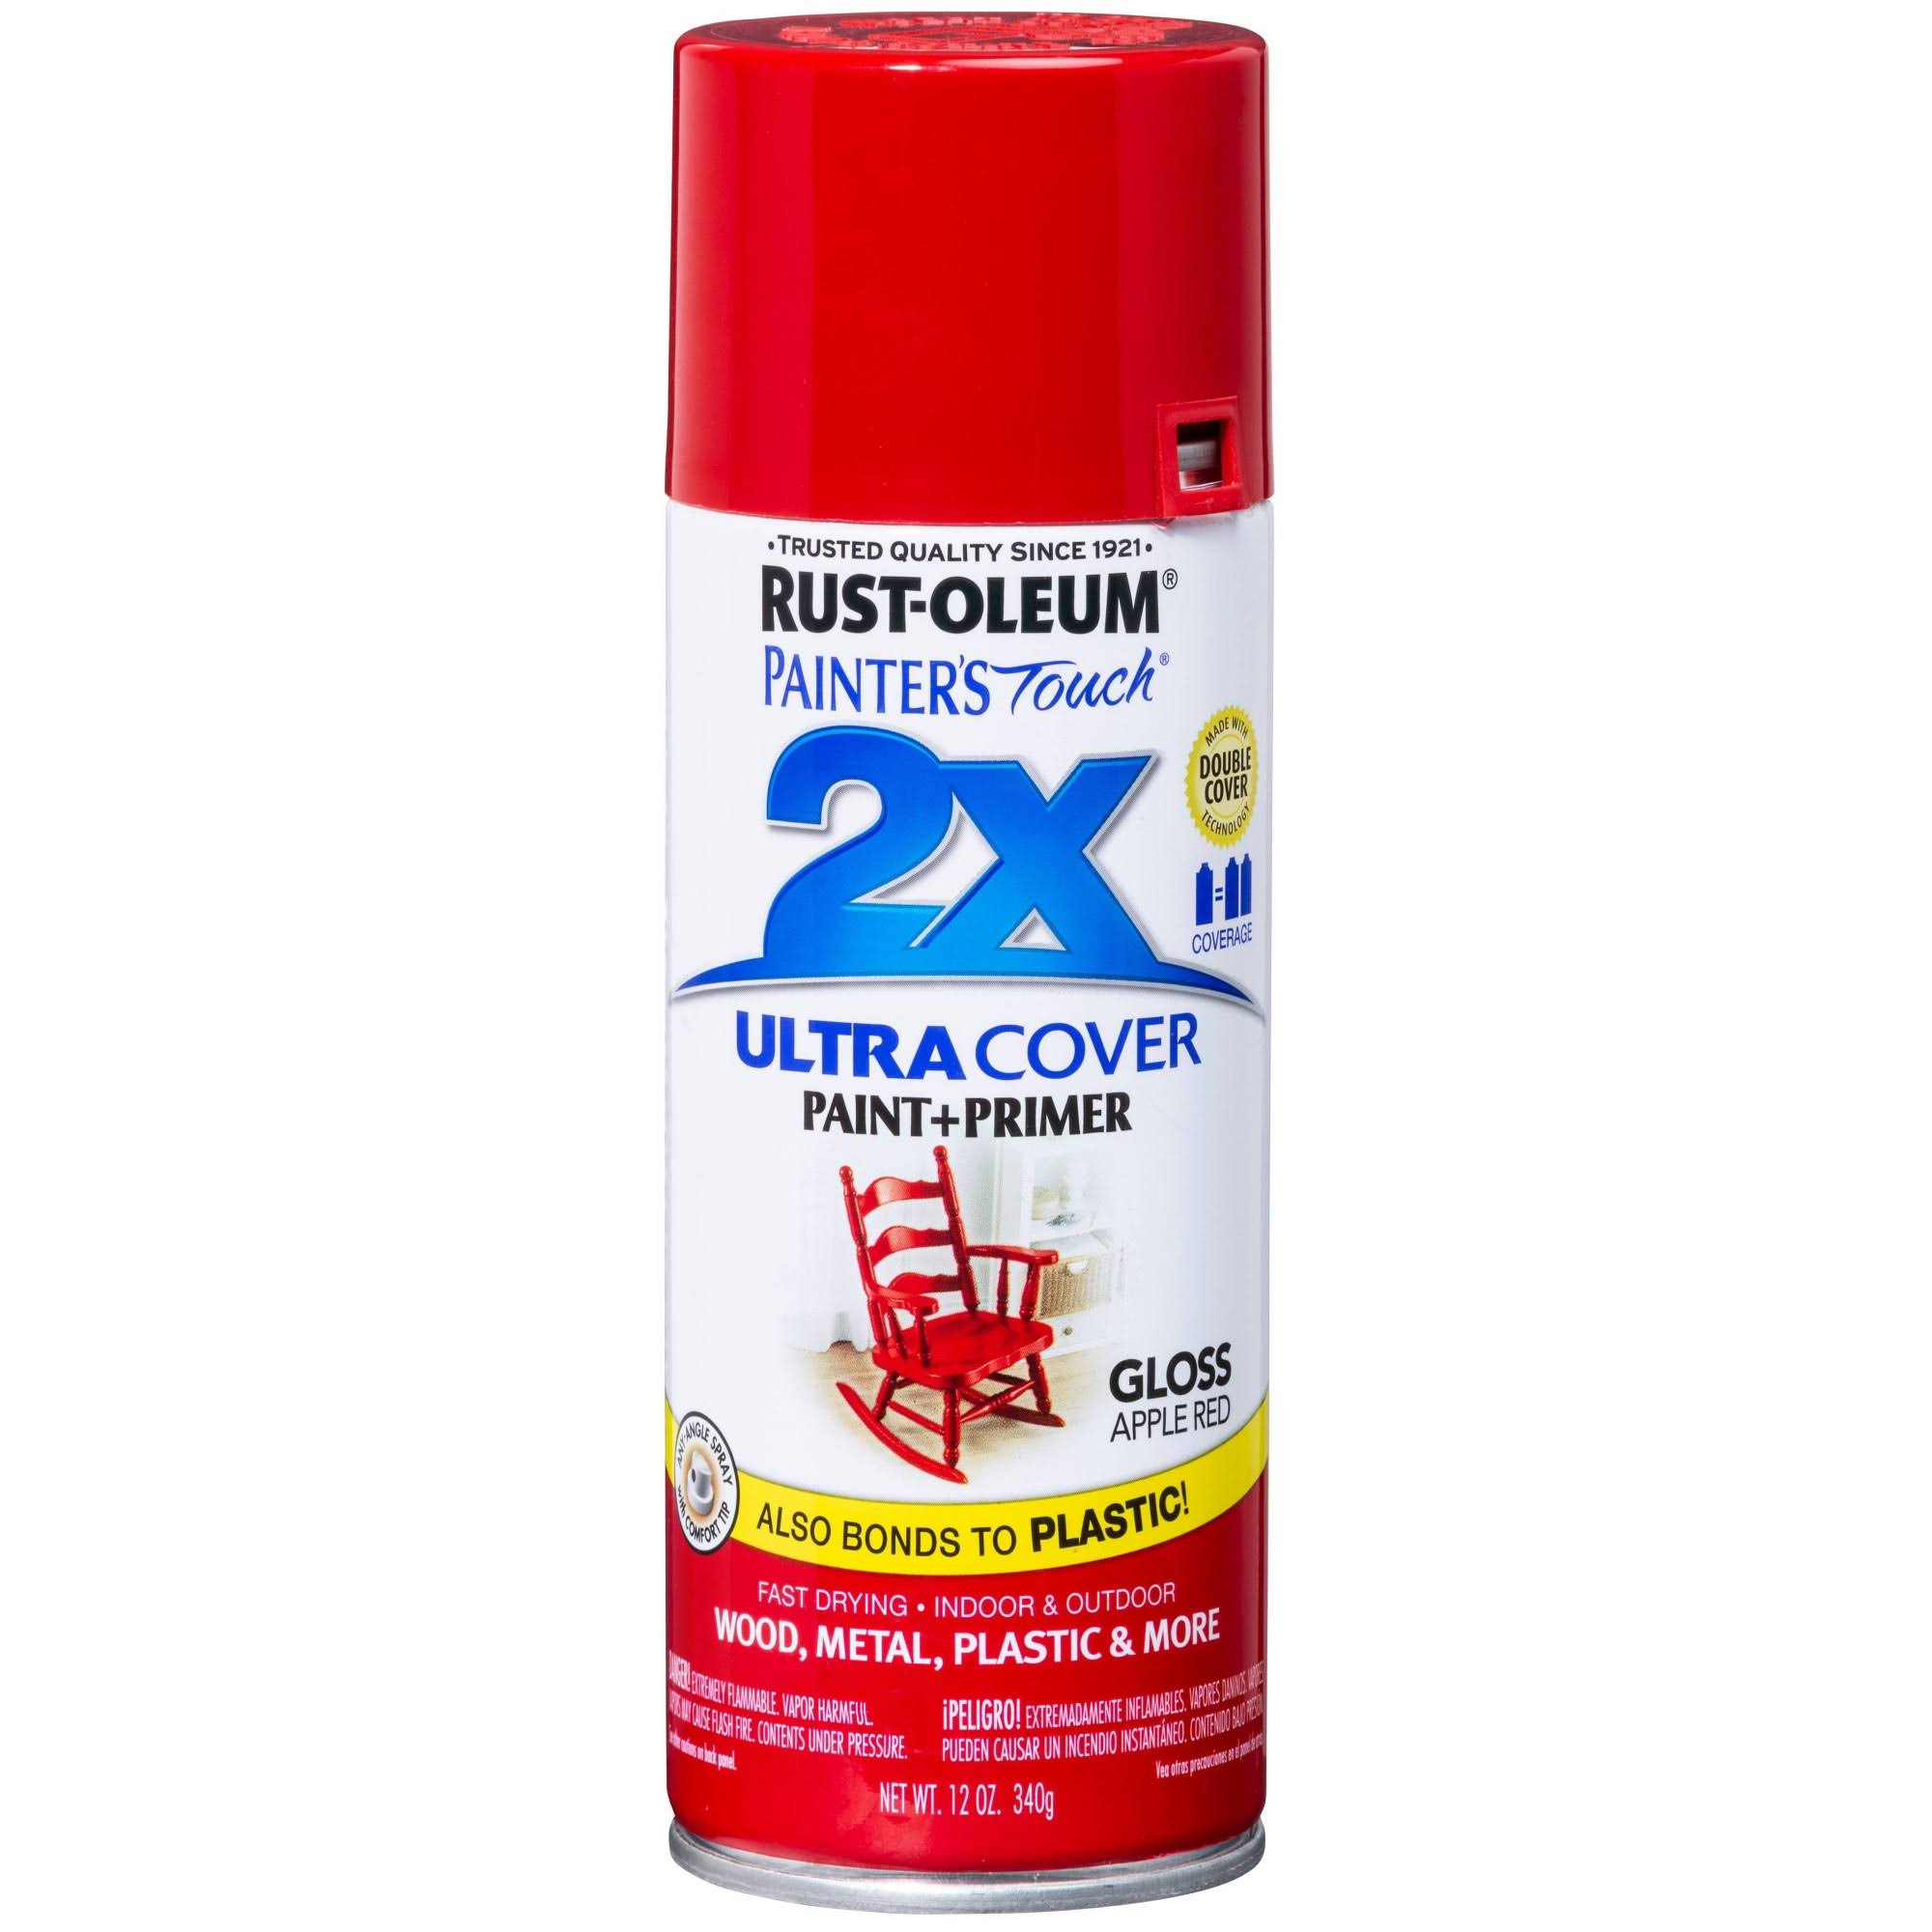 Rust-Oleum Painter's Touch Spray Paint - Gloss Apple Red, 340g